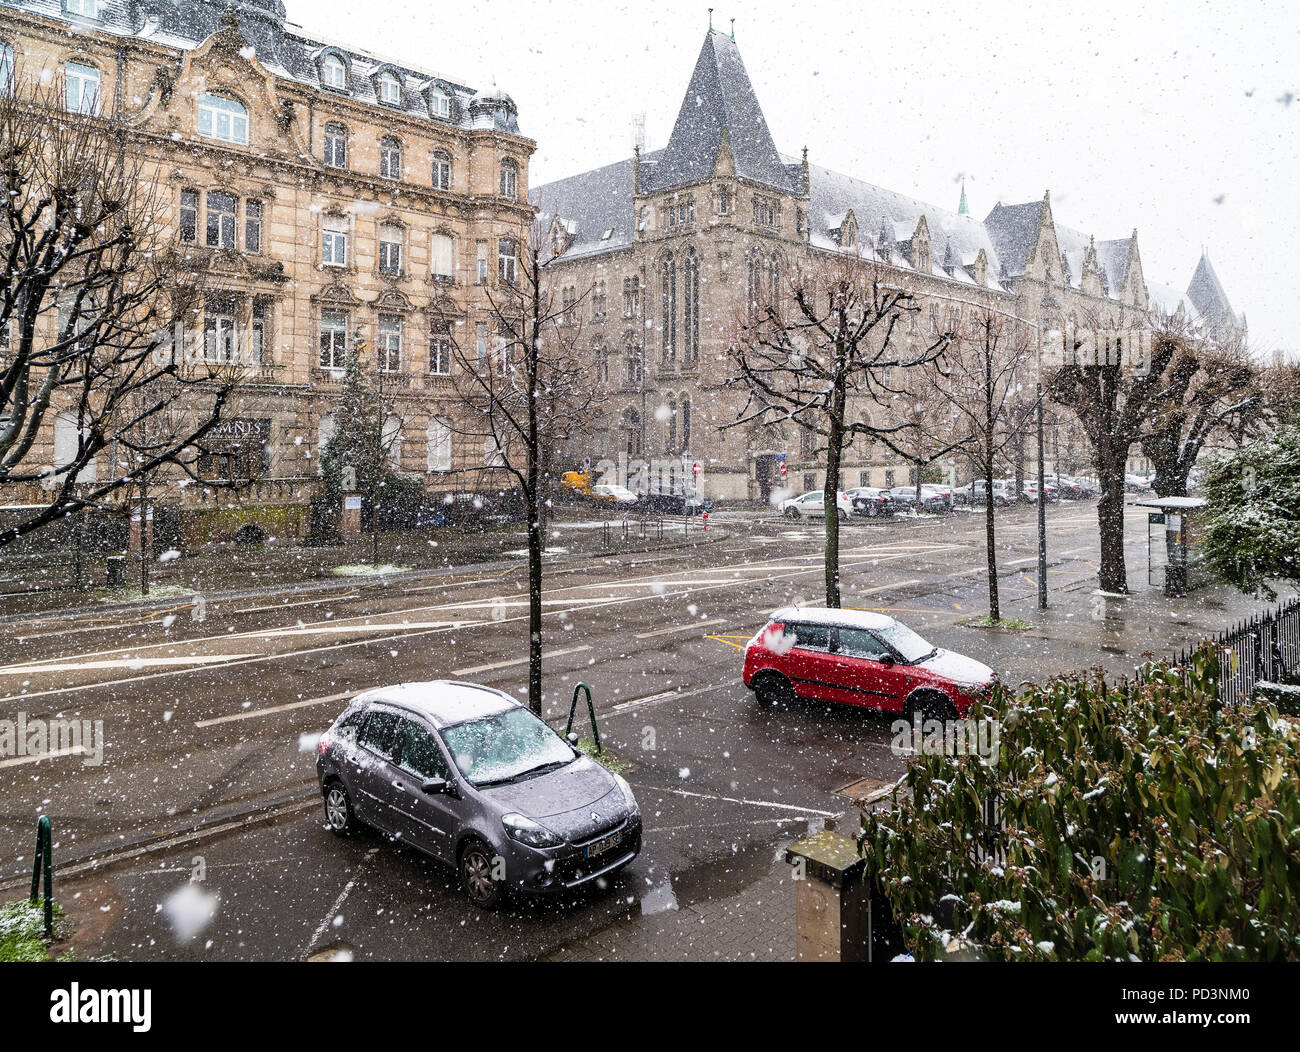 Cars parked on pavement, snow storm, Strasbourg, Alsace, France, Europe, - Stock Image